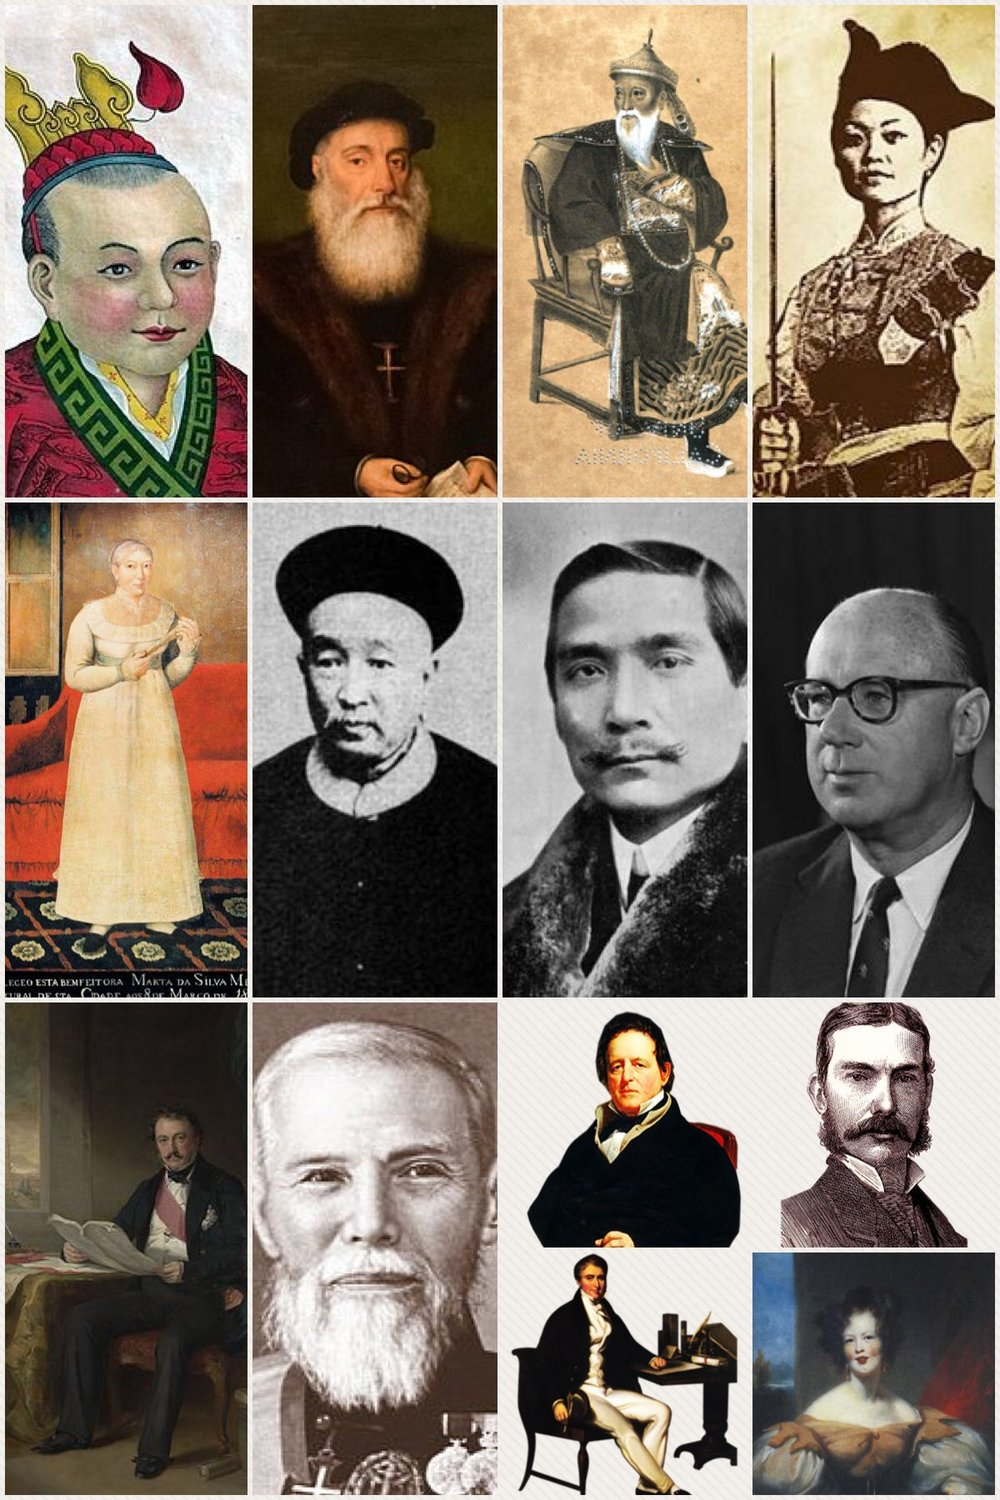 Just a few of the notable personalities I regularly introduce on tour: (1st Row) Song Emperor Zhao Bing (the boy emperor), Vasco Da Gama (the explorer), Commissioner Lin Zexu (the Emperor's mandarin), Madam Zheng Shih (the Pirate Queen) (2d Row) Martha Cuijk van Mierop (from orphan to benefactress), Zheng Guanying (the compradore scholar of Macau), Sun Yat Sen (the founding father of modern China), Sir John James Cowperthwaite (the architect of prosperity); (3d Row) Henry Pottinger (the Governor), Sir Robert Ho Tung (the Grand Old Man of Hong Kong), Warren Delano (an American trader), Charles Elliot (a much misunderstood figure), William Jardine (the Taipan), Harriet Low (an American in old Macau). There are of course many others...